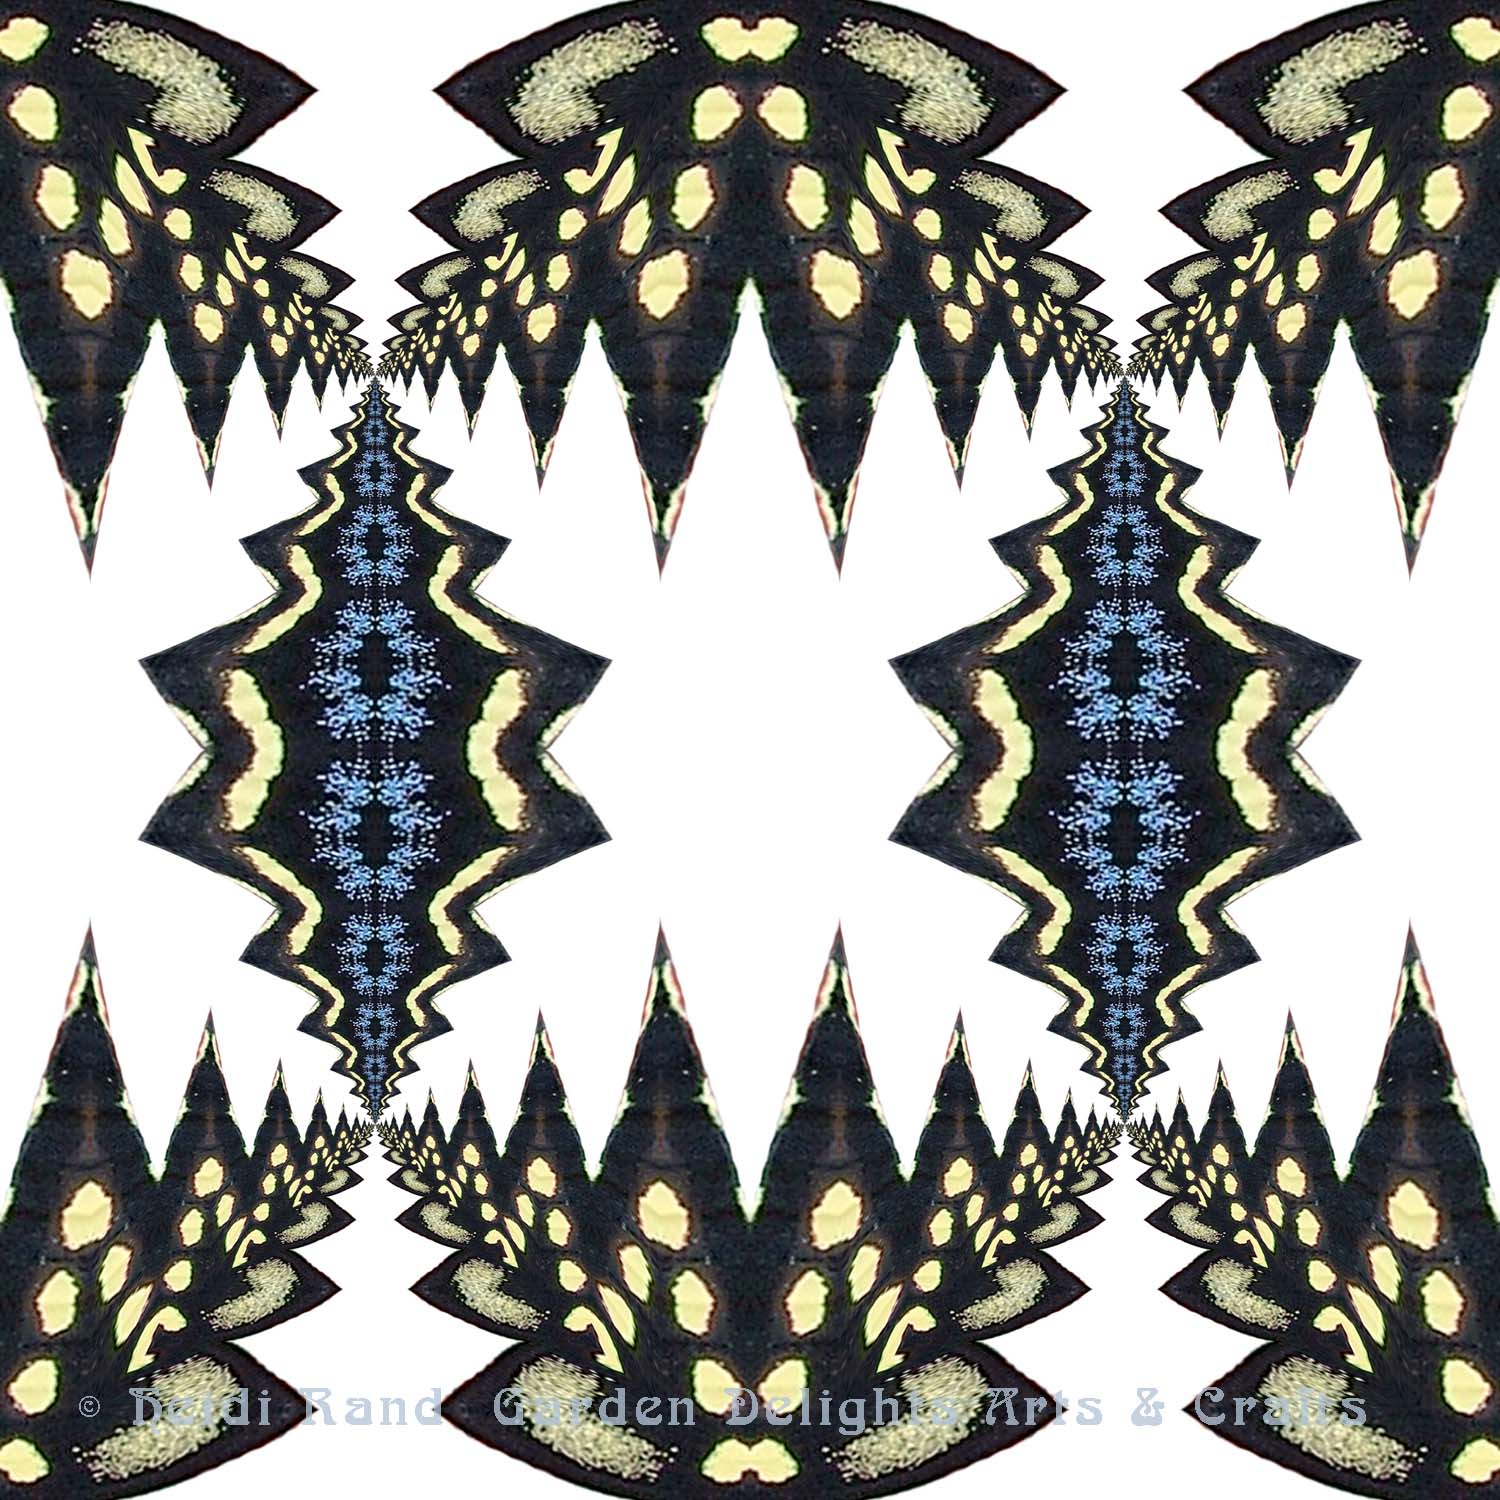 Swallowtail cutout with white